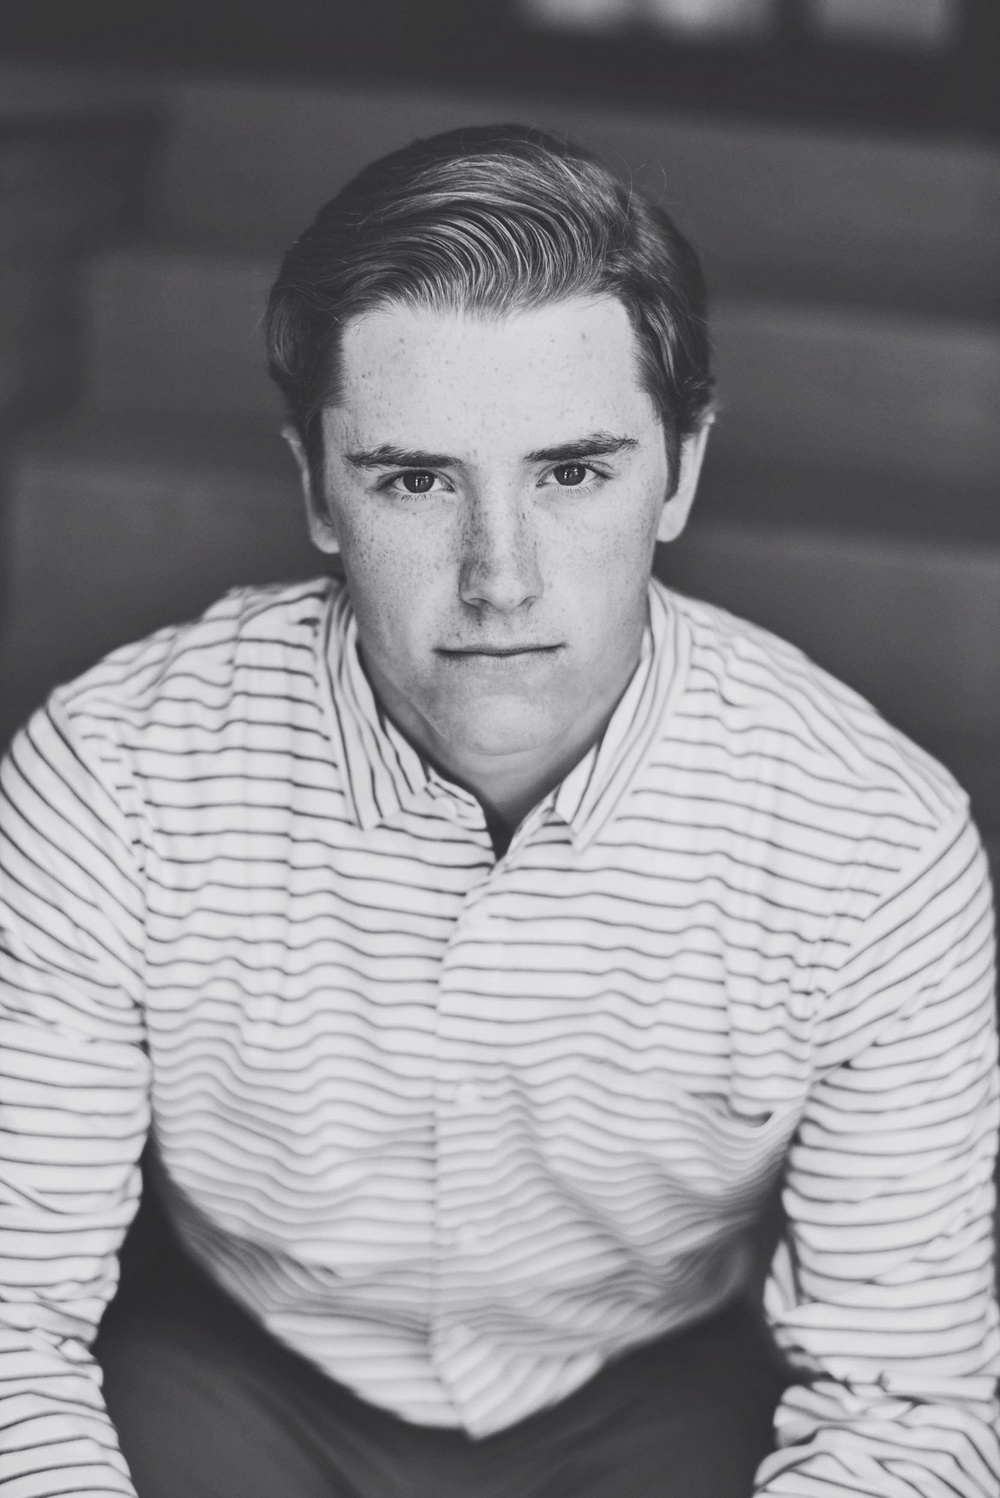 Collin_sneior_portrait_Minneapolis_minnesota_lucas_botz_photographty_010.jpg